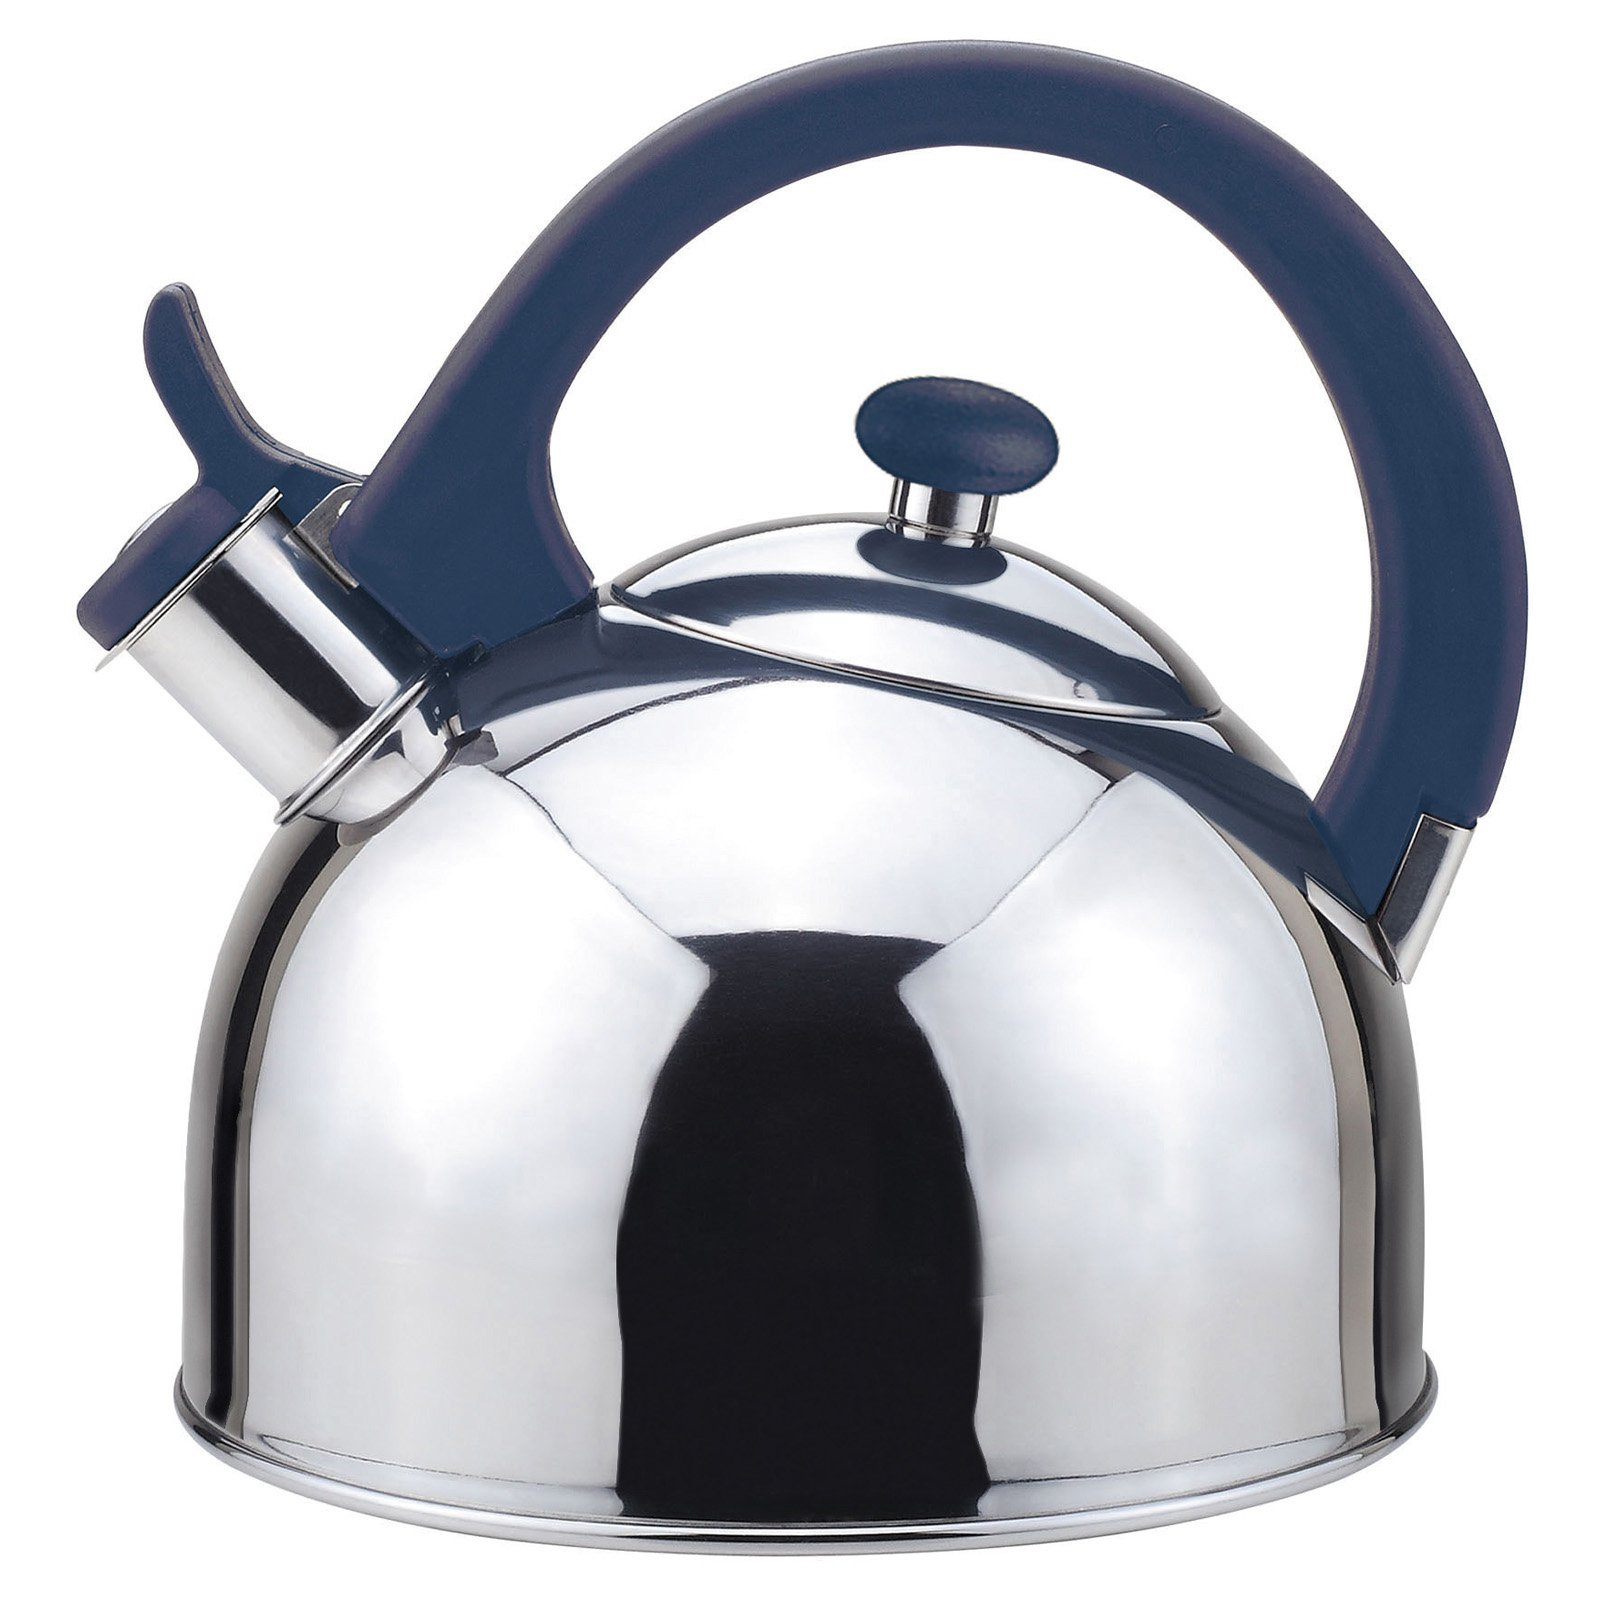 Acacia 2 Qts. Stainless Steel Stovetop Tea Kettle with Whistle in Blue